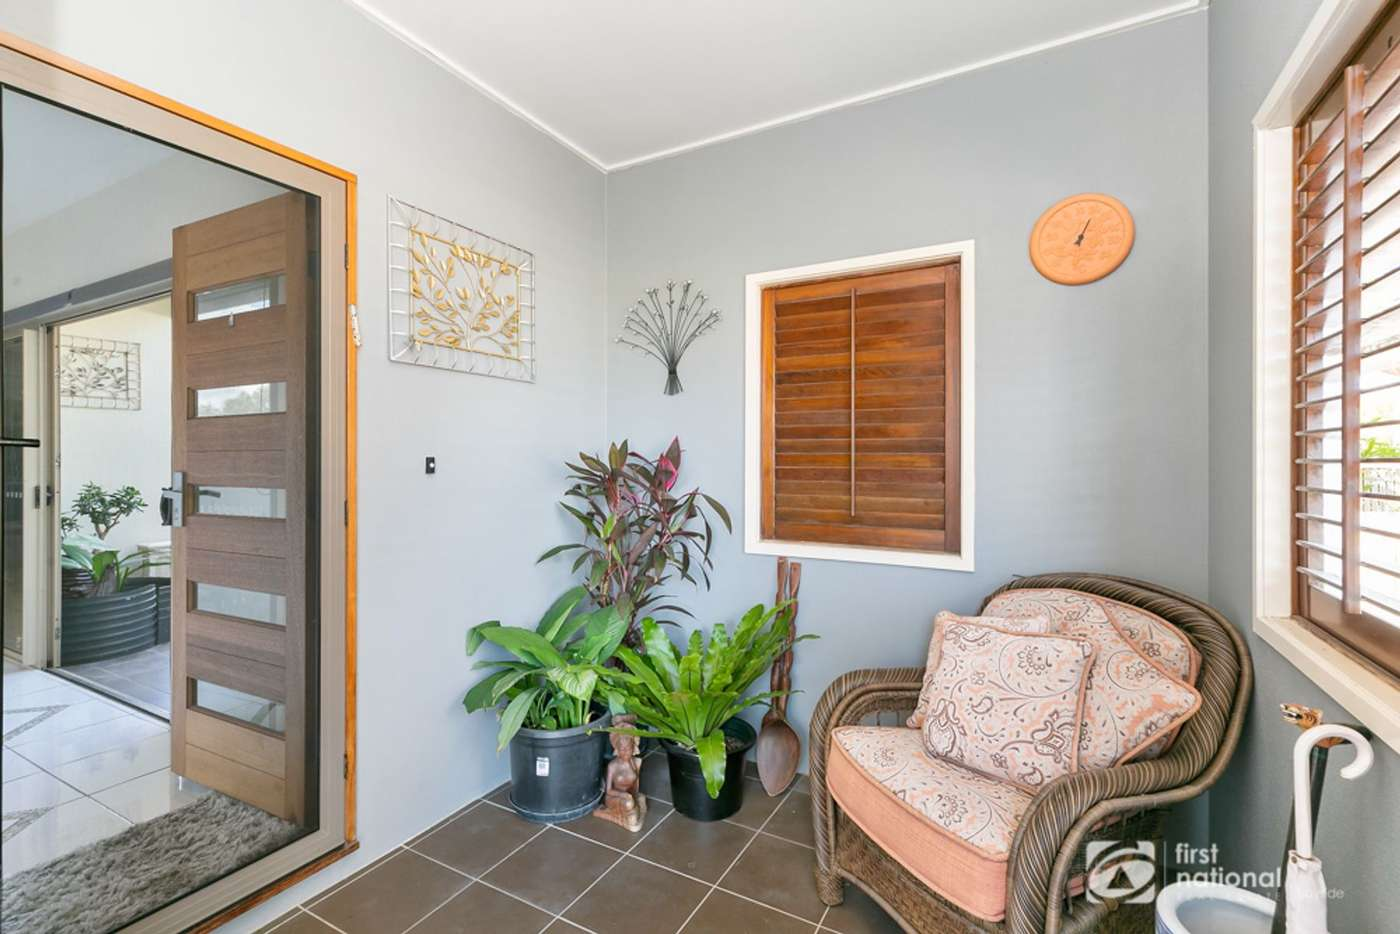 Fifth view of Homely house listing, 95 Thomas Street, Birkdale QLD 4159